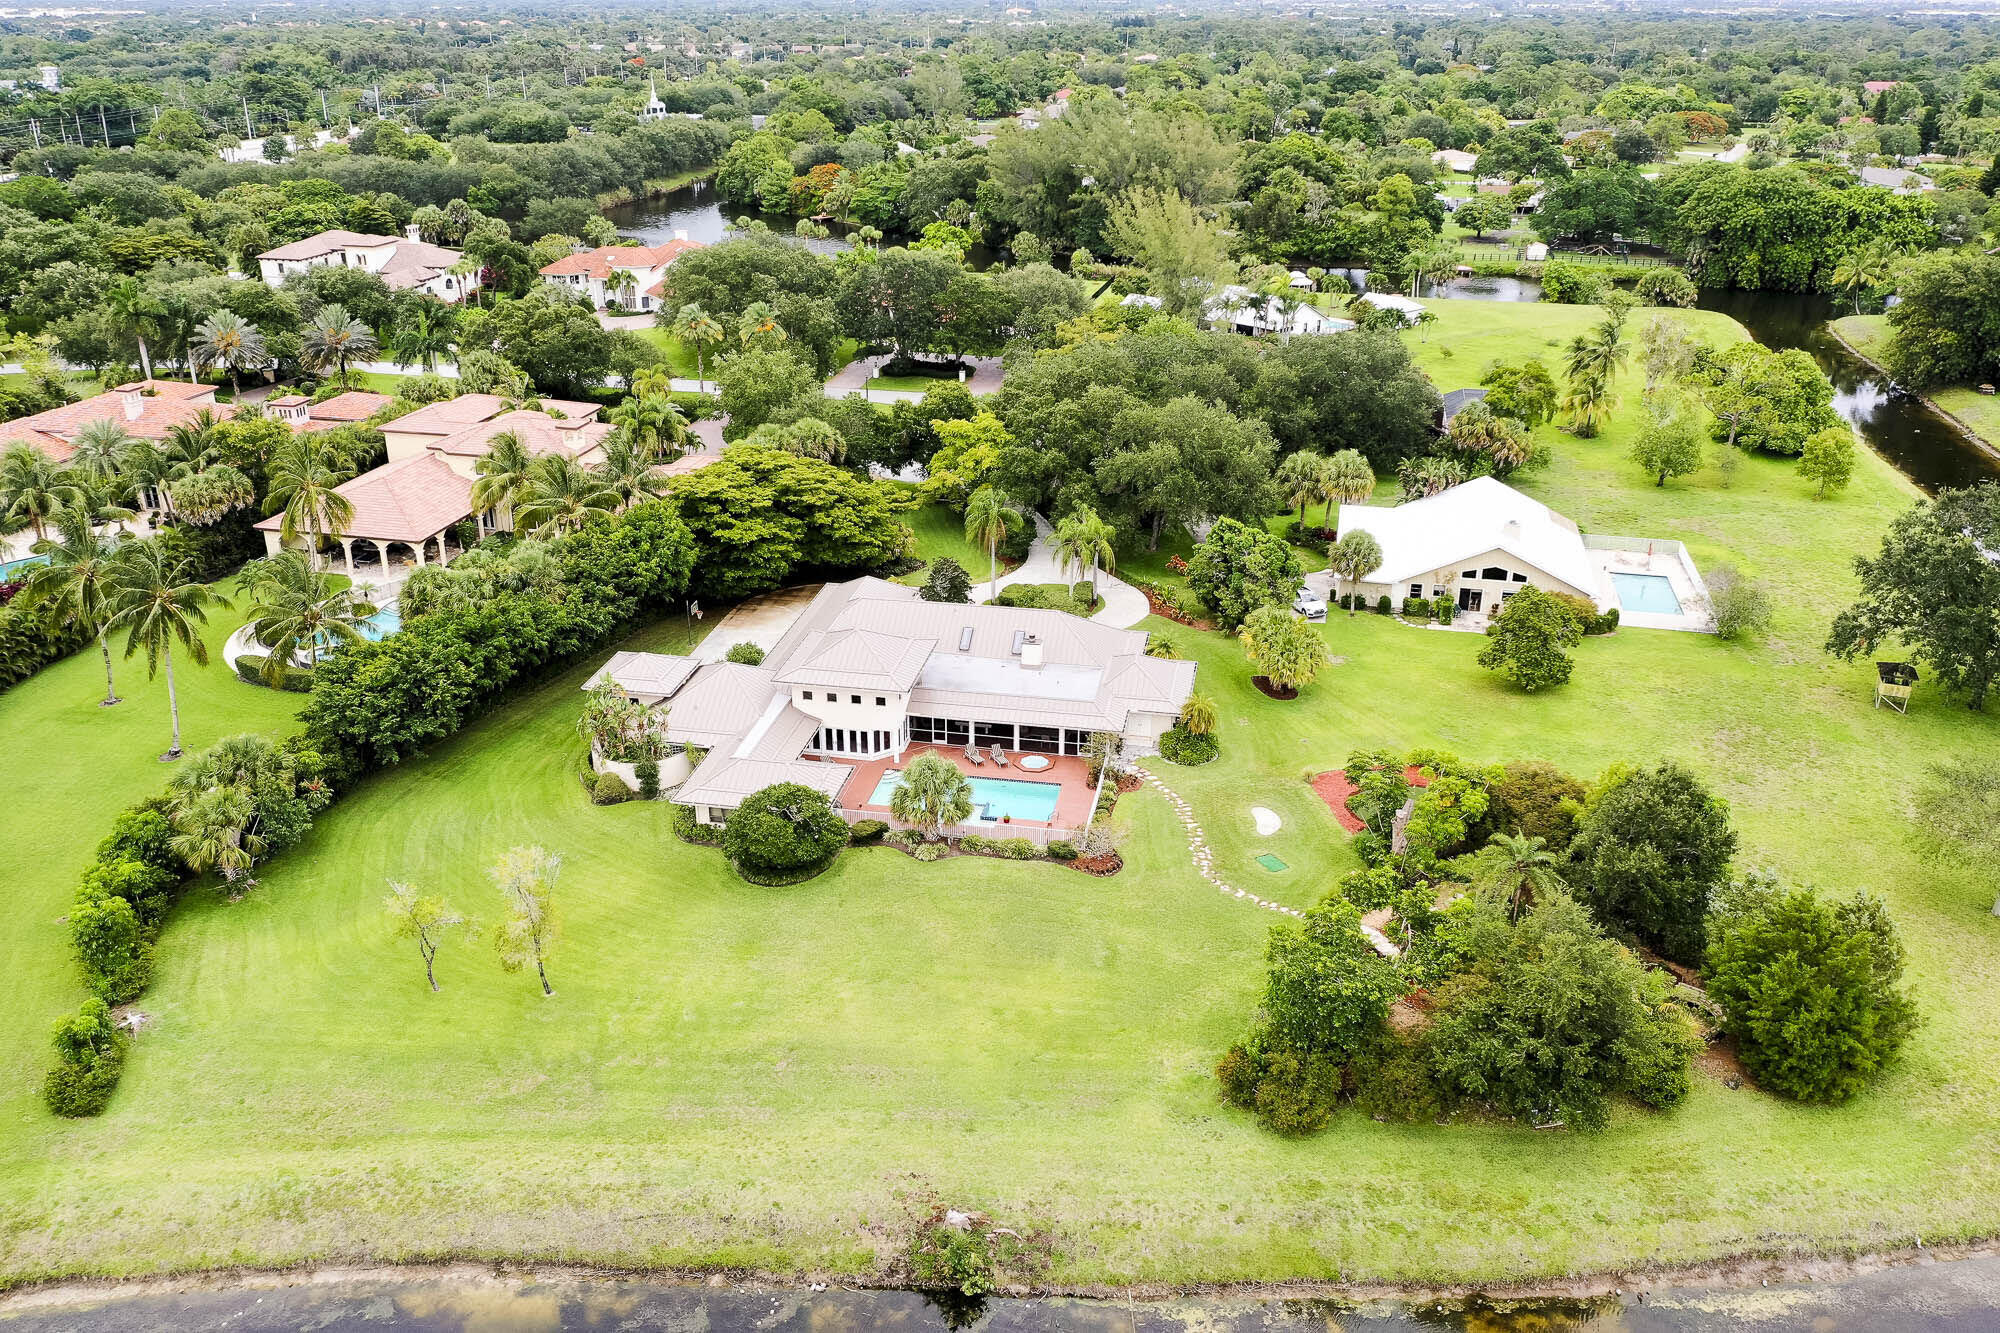 One of most desired locations in Steeplechase. Close to the North gate, away from any street noise. Private Cul de Sac Waterfront Lot. 1.25 acres - Pie shaped with 280' of gorgeous landscaped water frontage. Spacious rooms featuring En-Suite baths for each Bedroom. Large covered Porch/Lanai overlooking the enormous pool with waterfall and separate hot tub. The patio also includes a fully equipped Summer Kitchen.  Private guest suite detached from the home.  Putting green, custom running stream oasis with sitting areas looking out on the enormous back yard and water views. Huge potential to make this your Dream house!